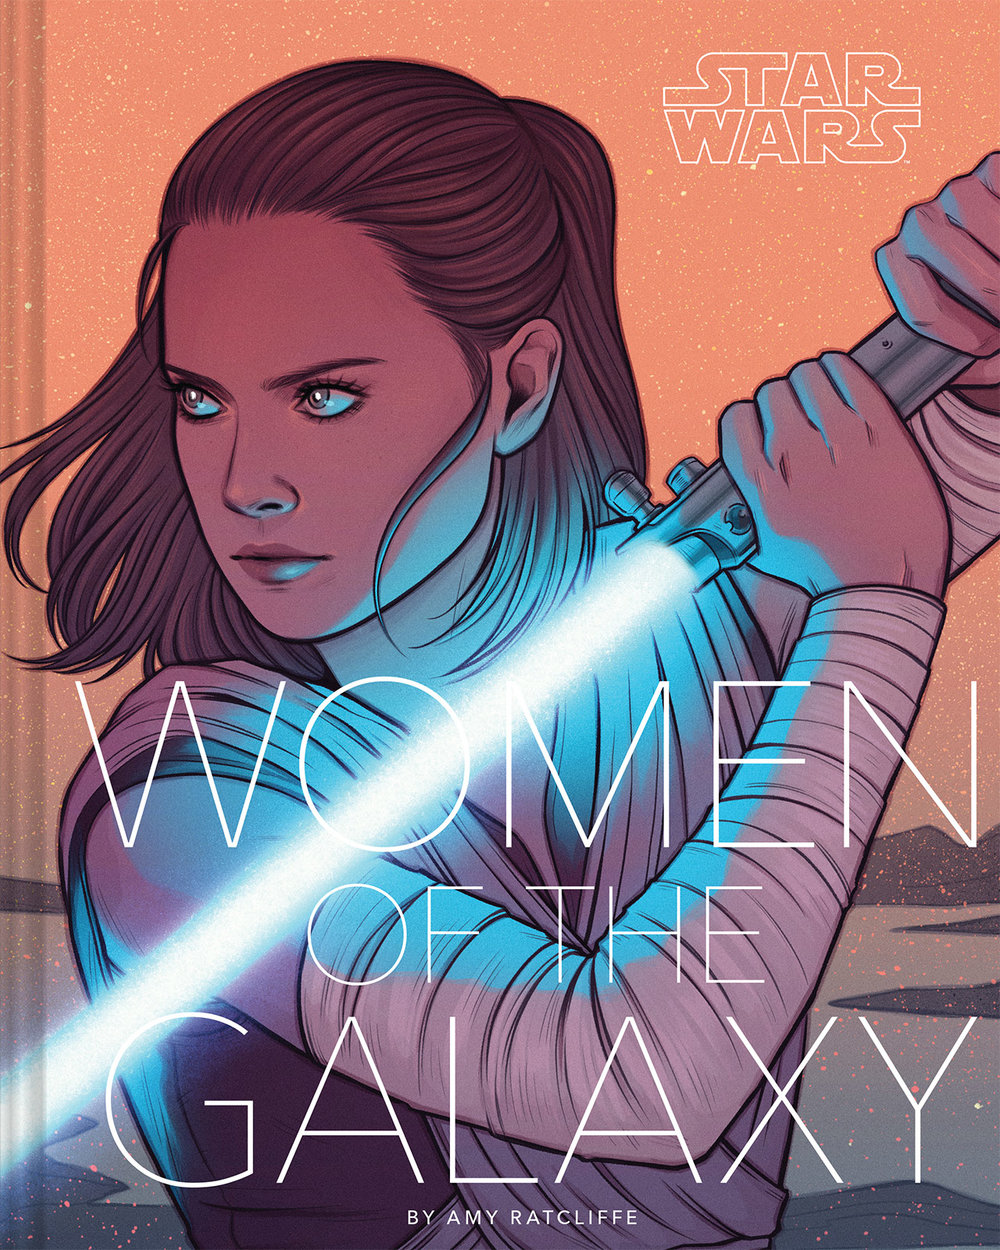 The cover of the book, illustrated by Jen Bartel.